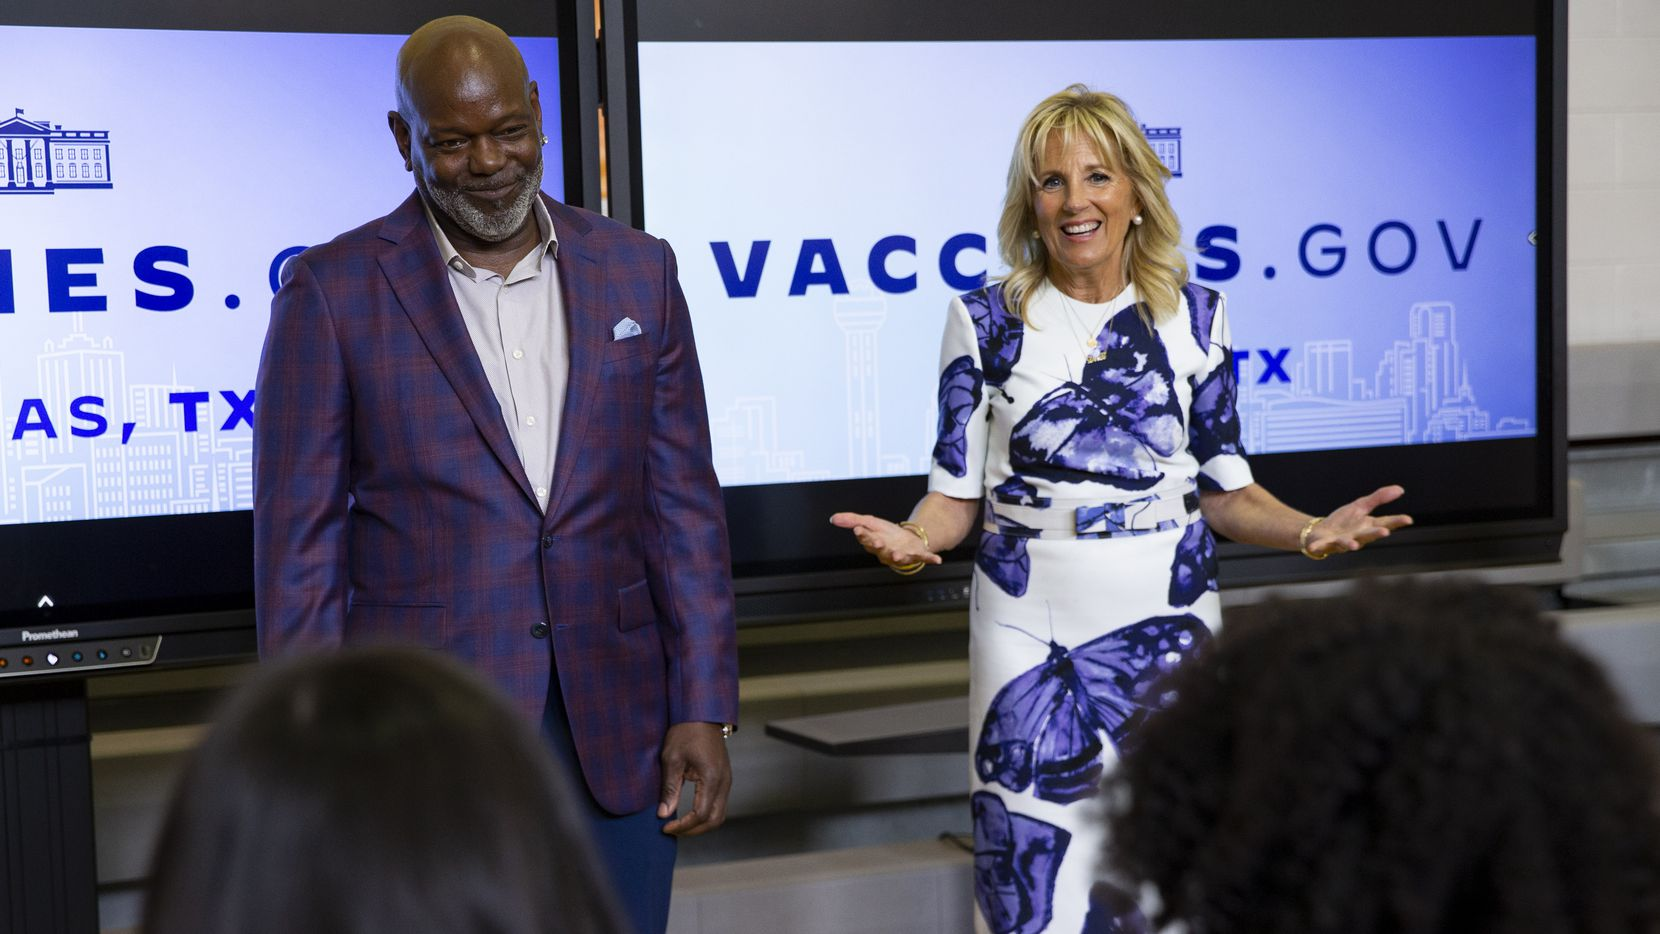 Dallas Cowboys legend Emmitt Smith (left) and first lady Jill Biden speak to people in the observation area on June 29, 2021, during a tour of the vaccination site at Emmett J. Conrad High School in Dallas.